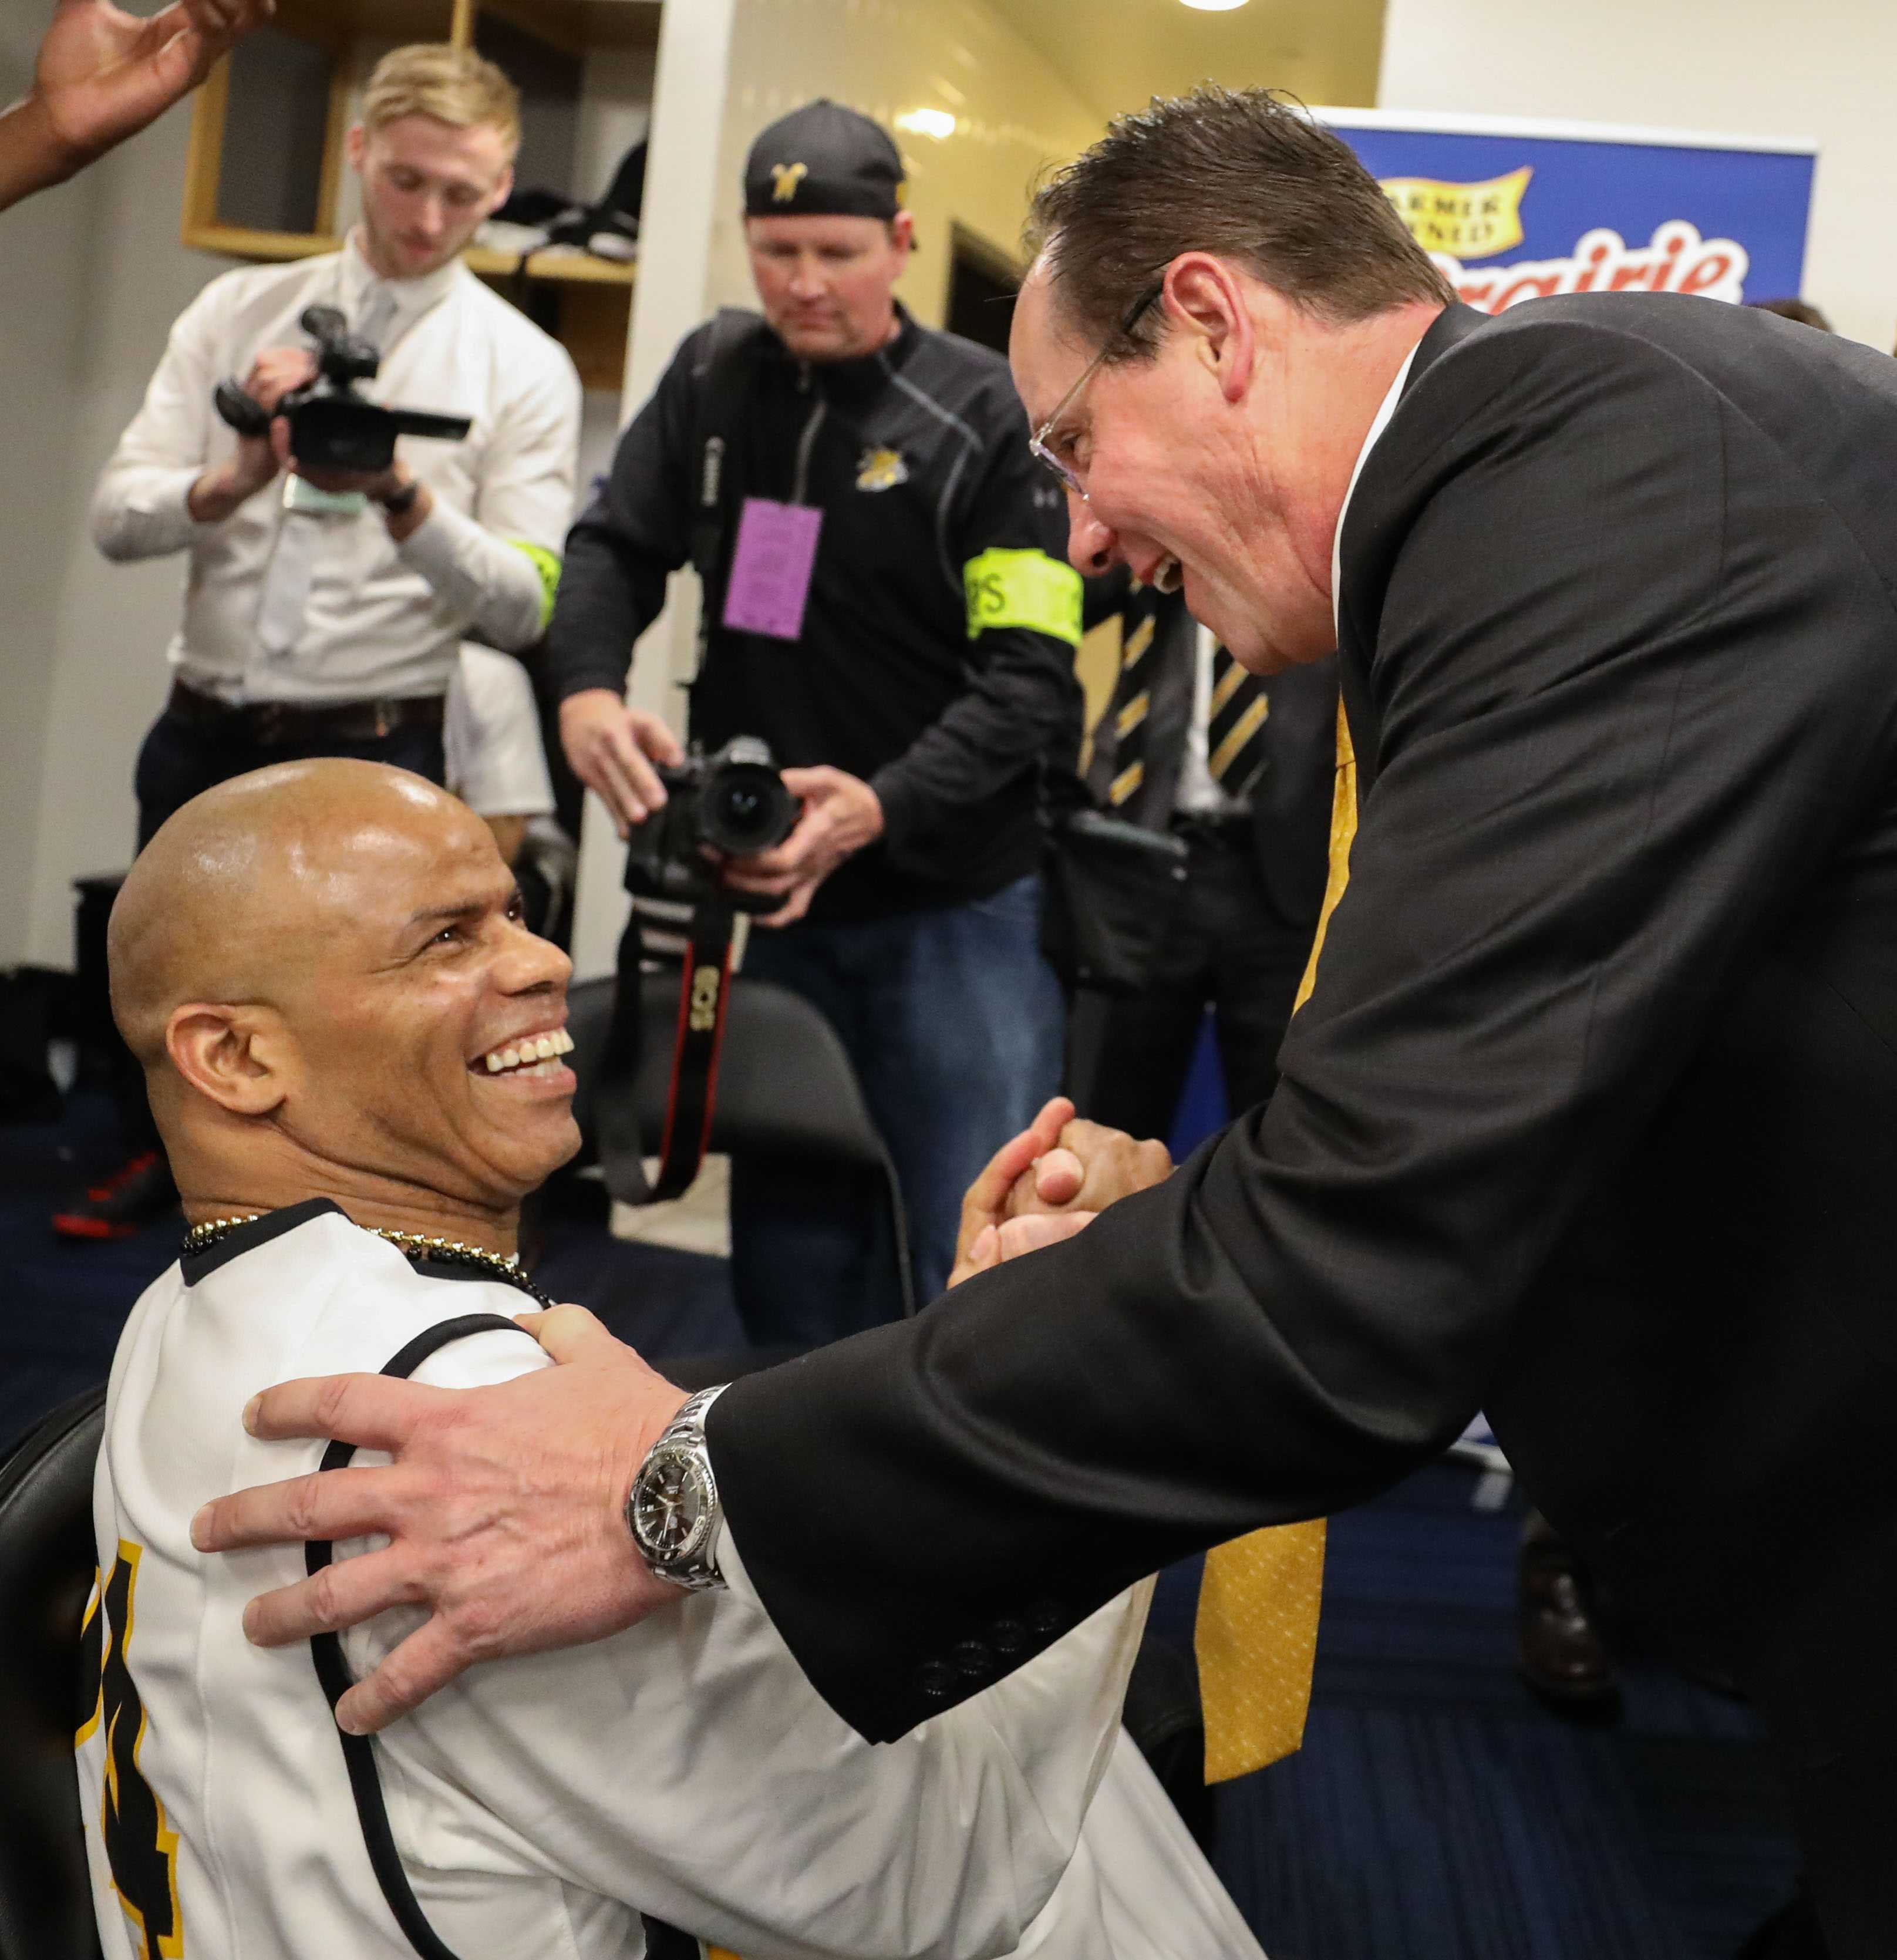 Gregg Marshall greets Darren Thomas, a die-hard Shockers fan, in the locker room after the championship game in St. Louis.